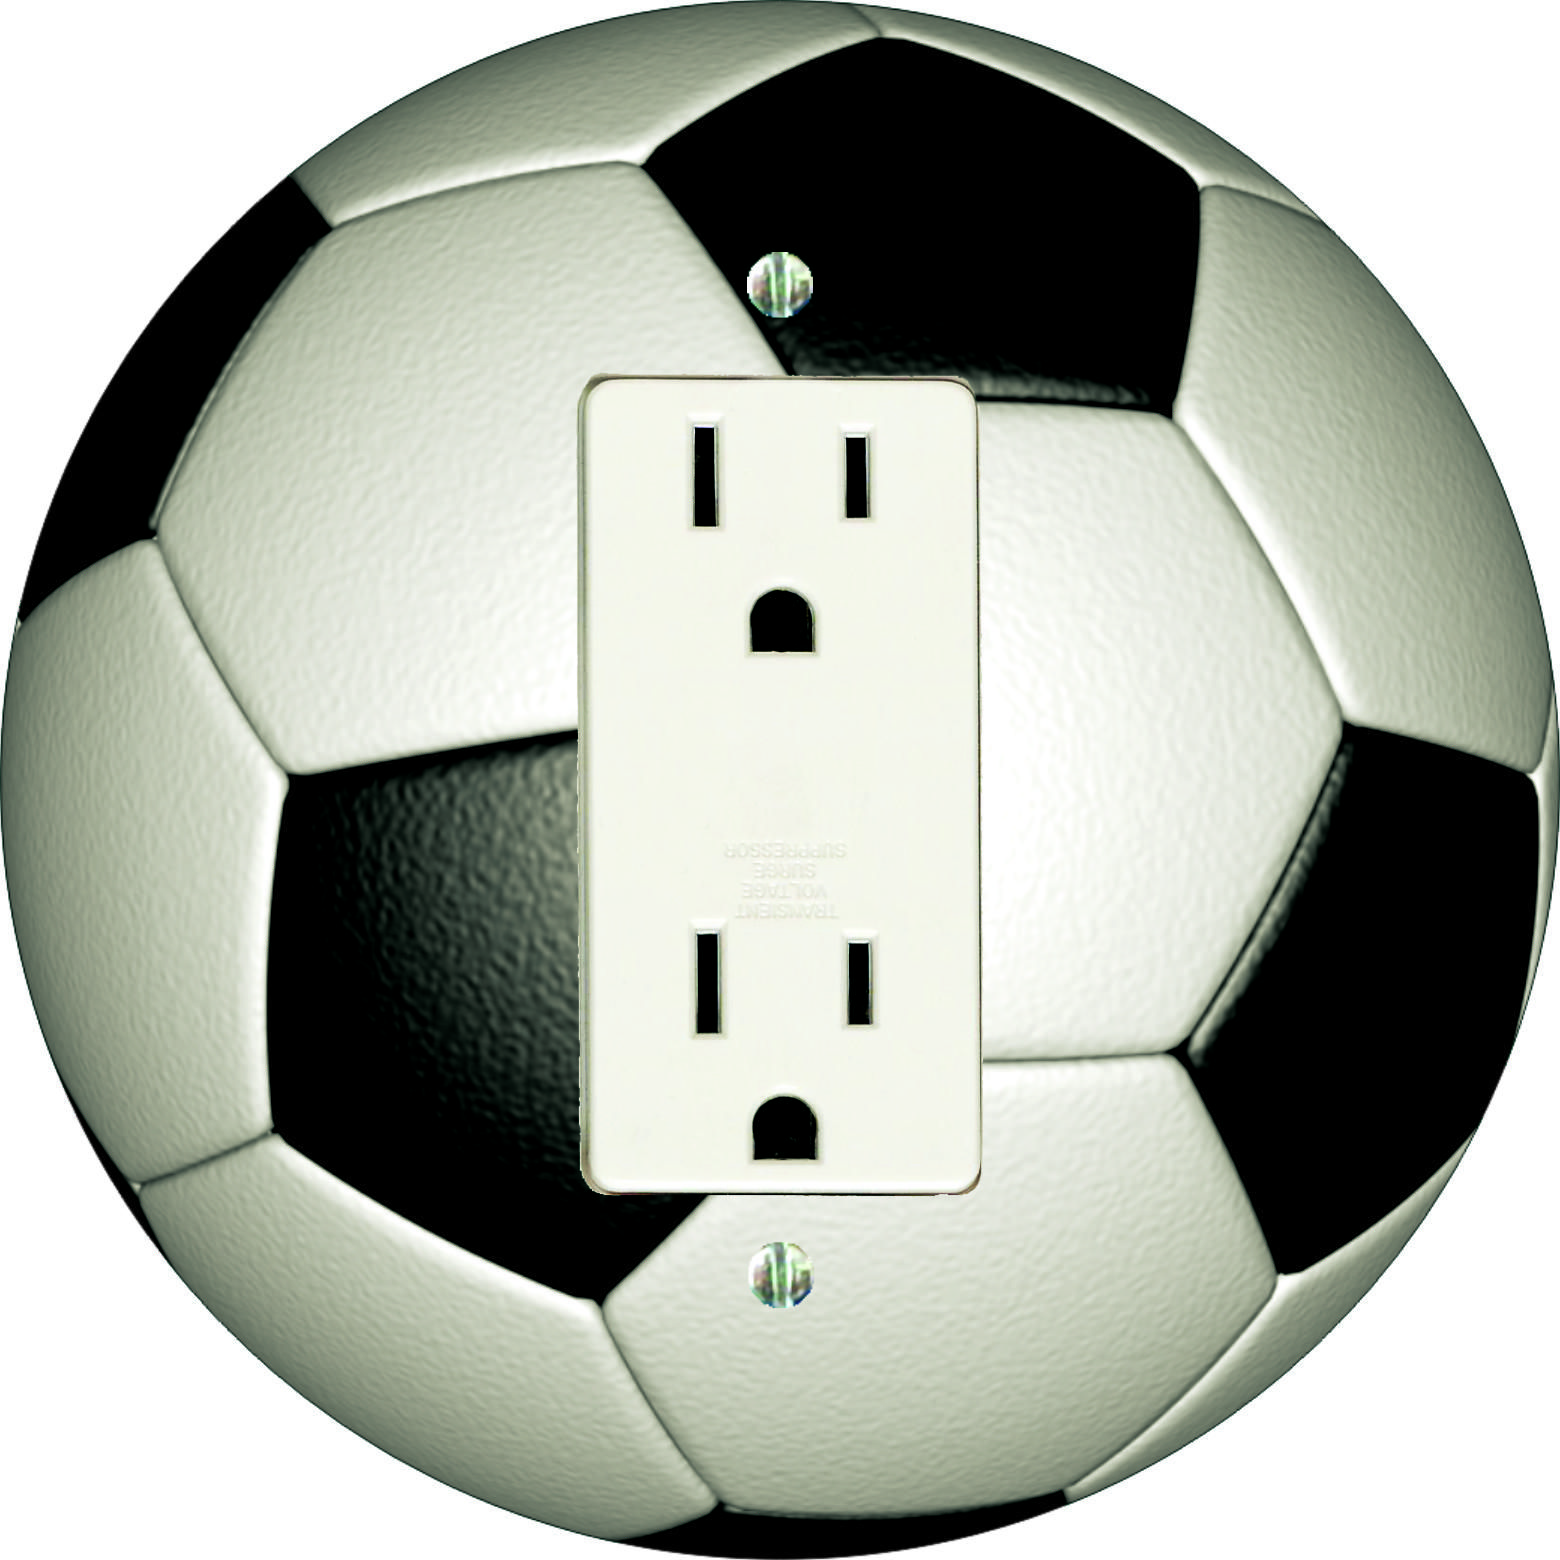 Soccer Decora Outlet, also fits decora rocker and Decora GFCI. Made in USA